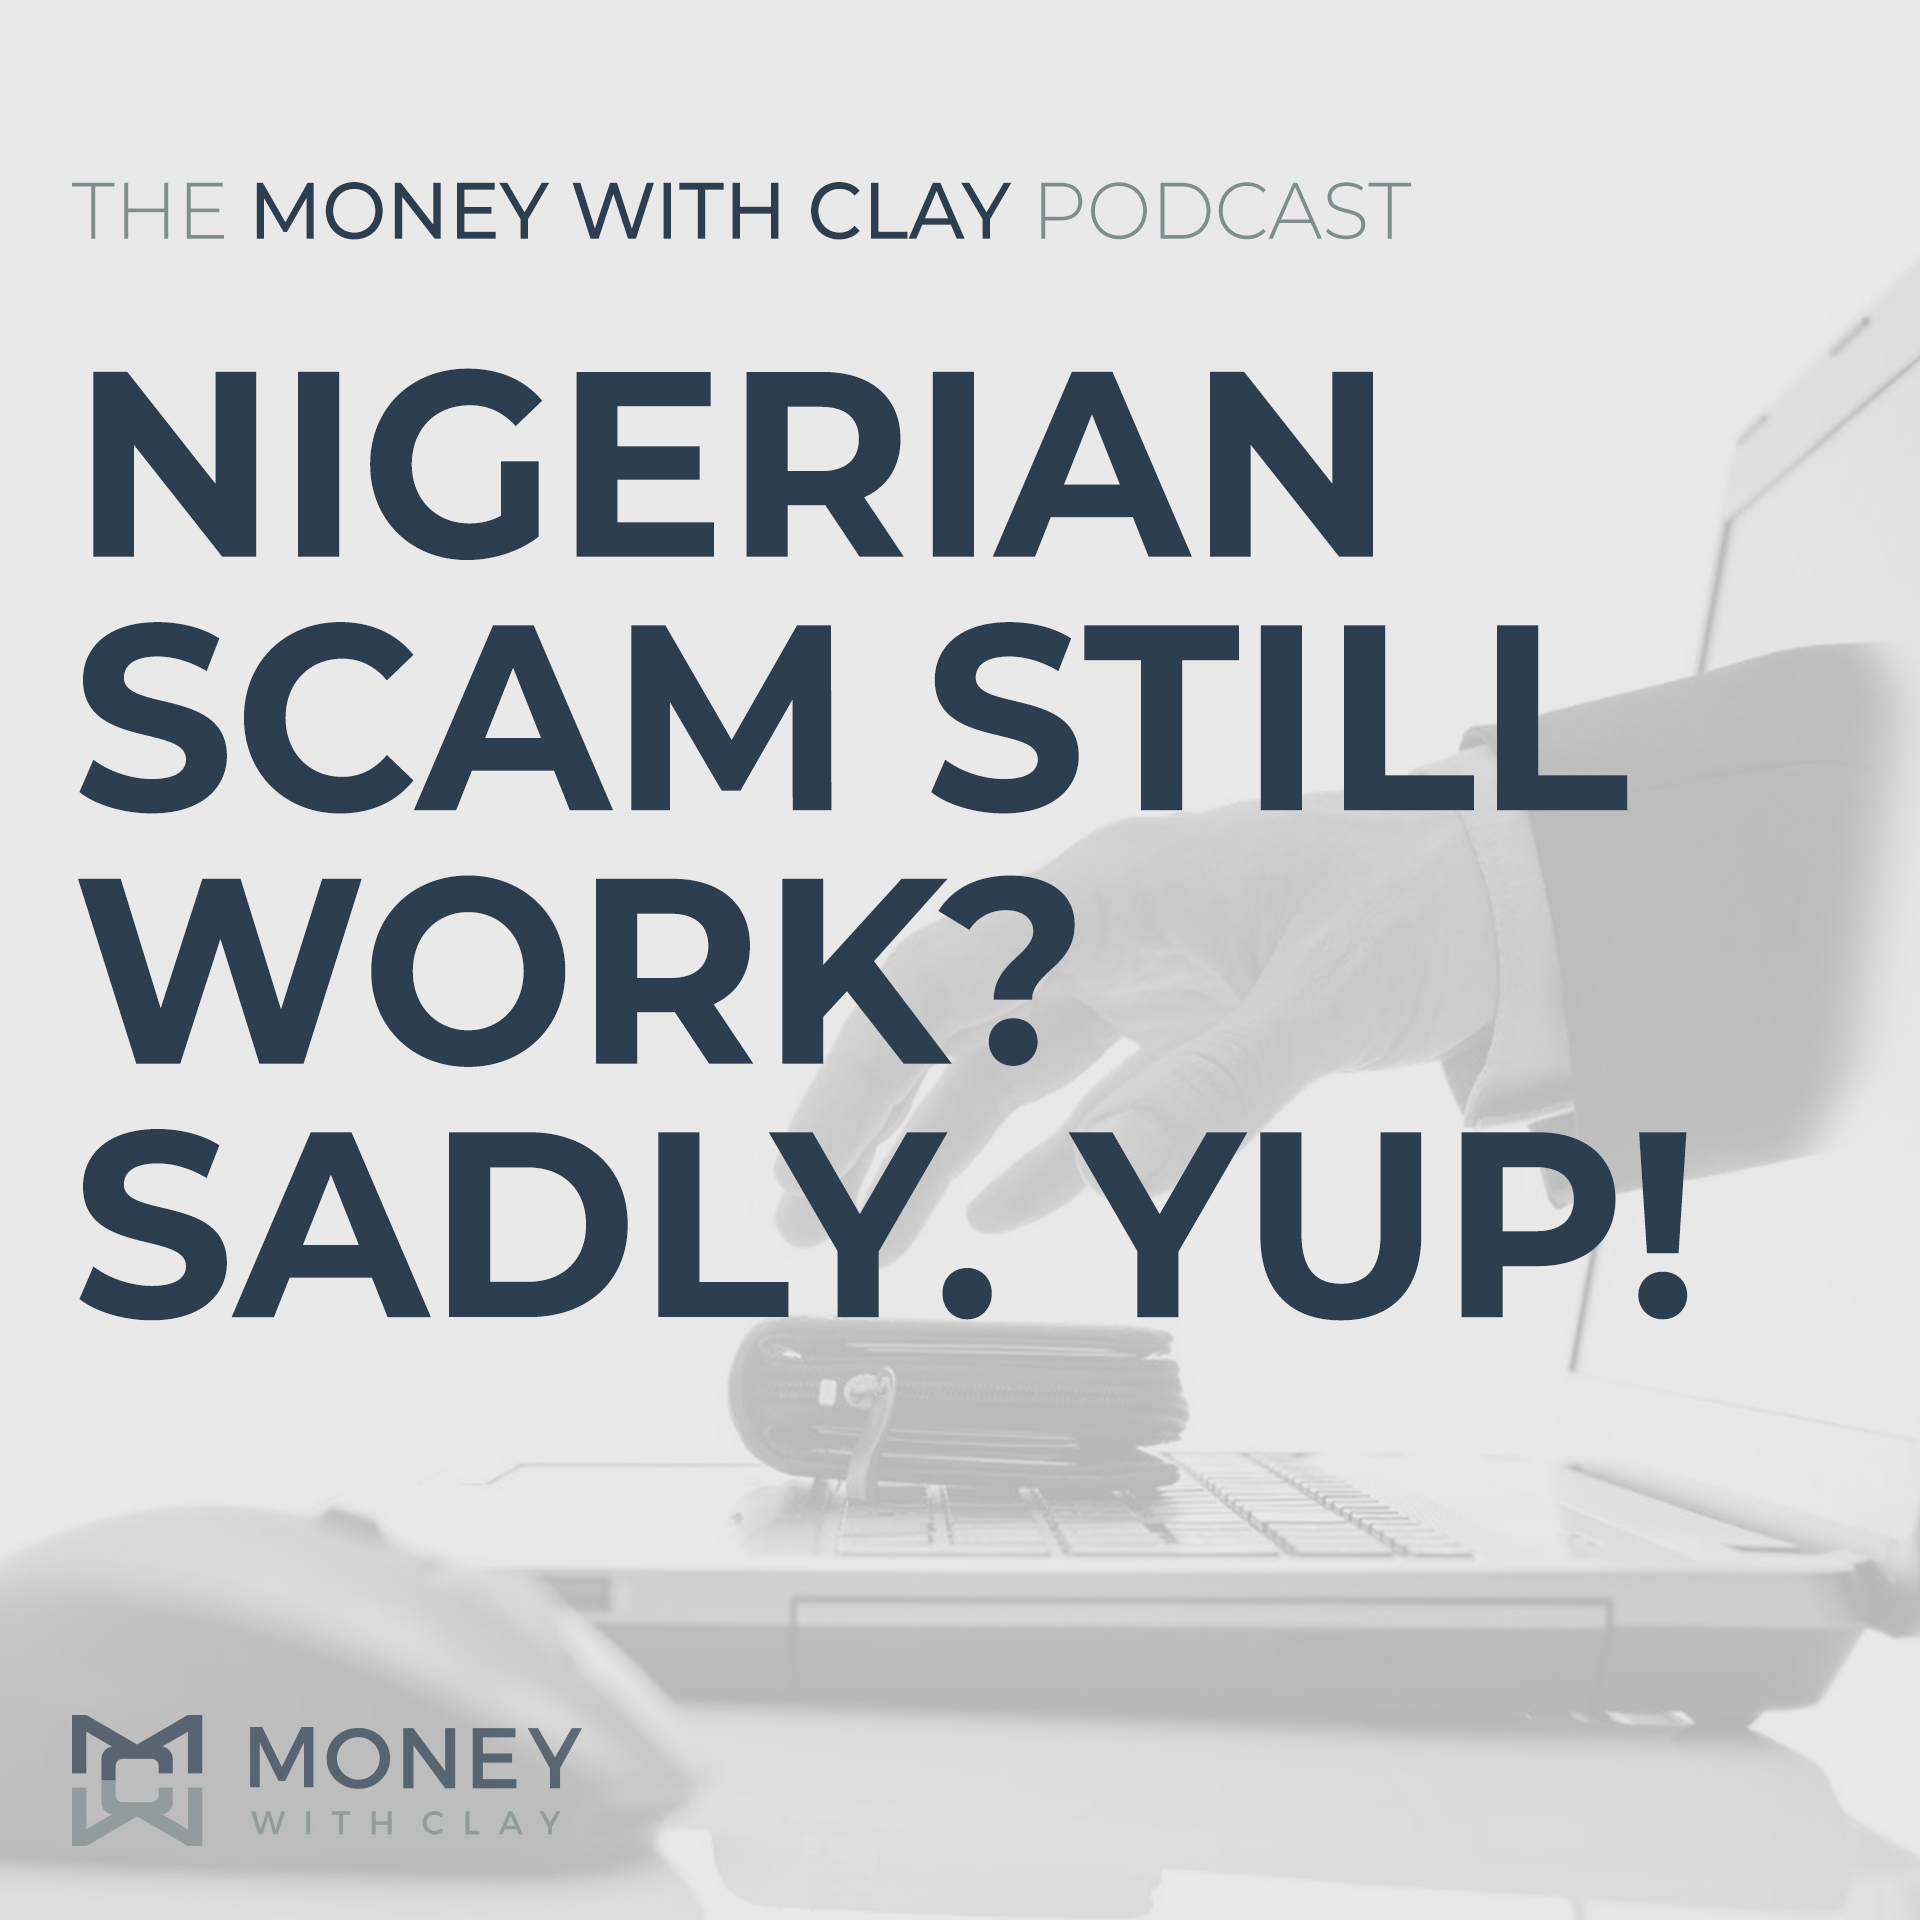 #056 - Nigerian Scam Still Work? Sadly. Yup!